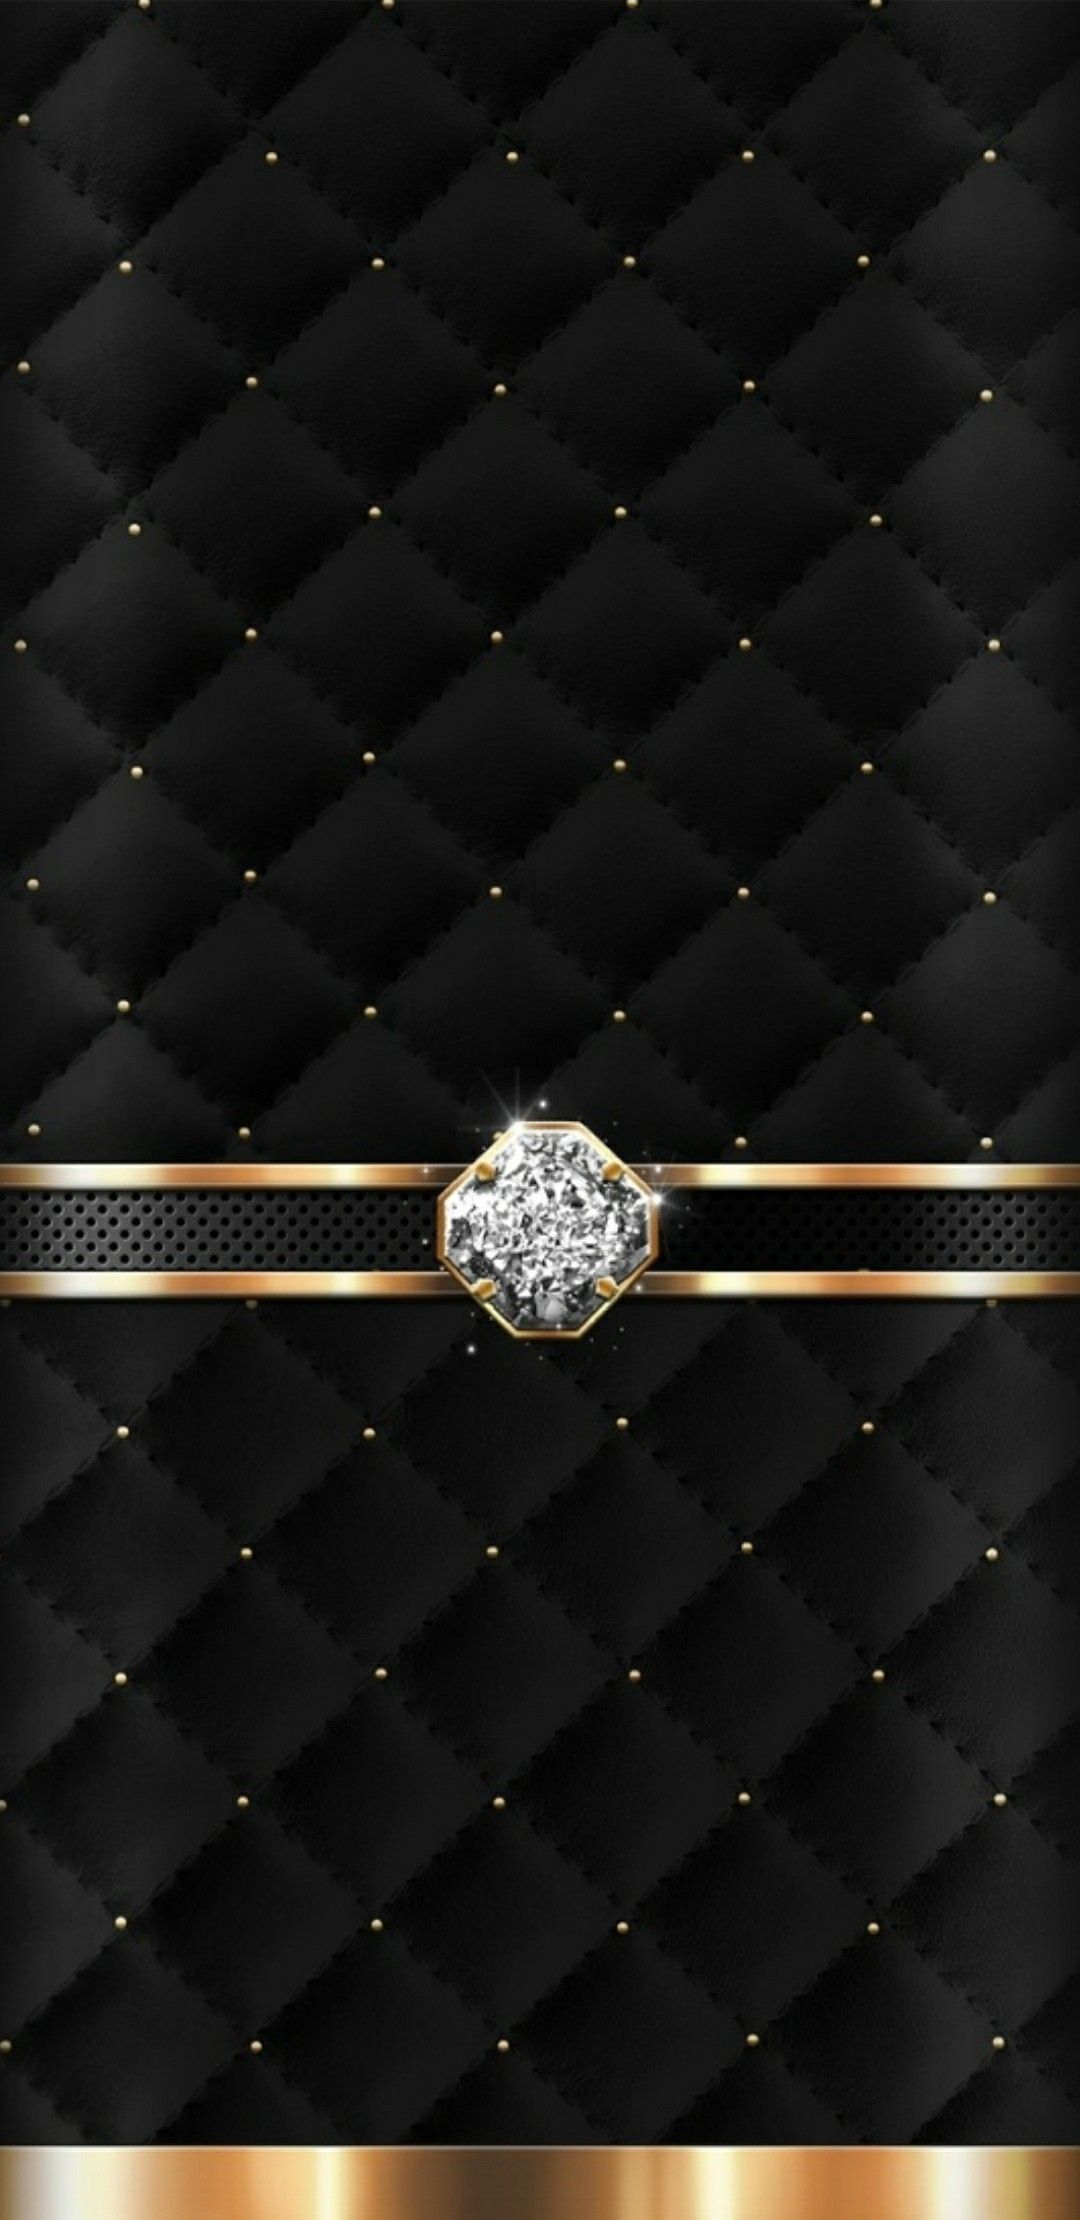 Black and gold Diamond wallpaper, Bling wallpaper